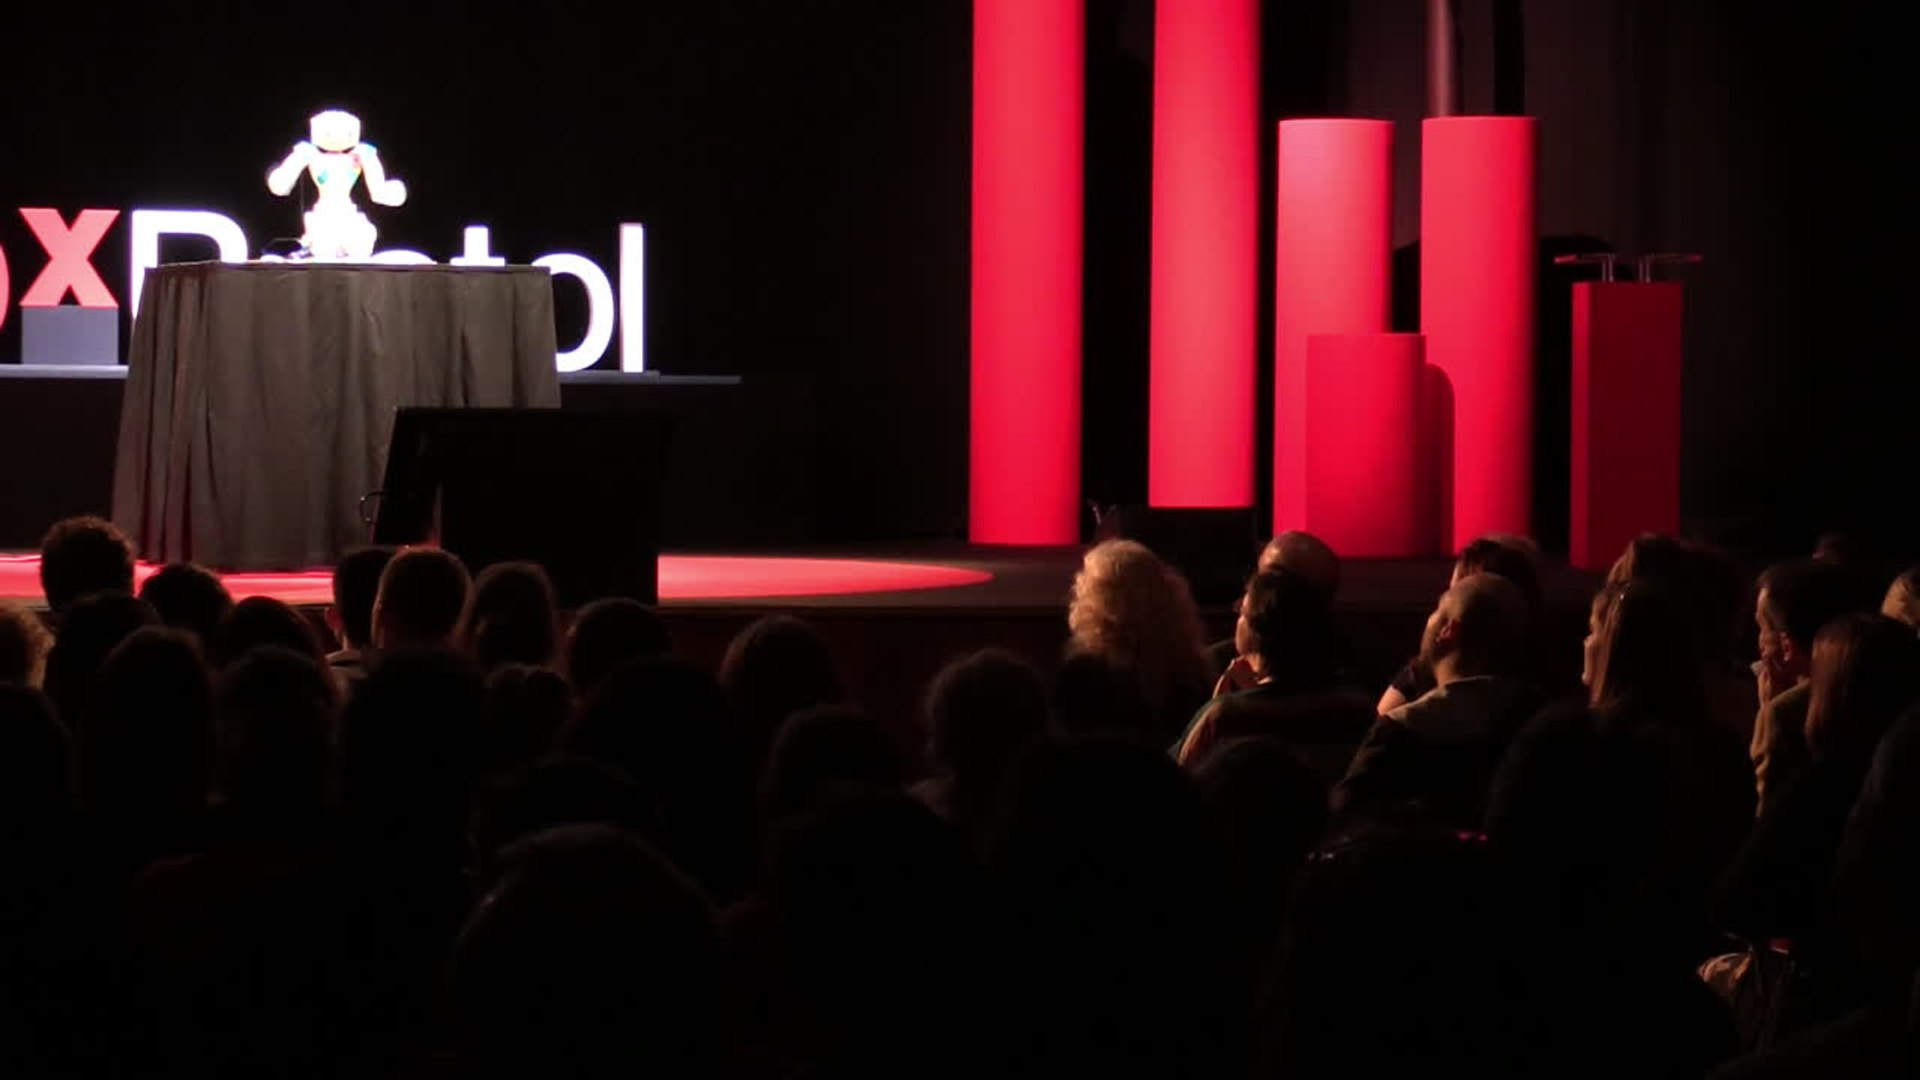 Meet 'Bob', the First Ever Robot to Give a Ted Talk